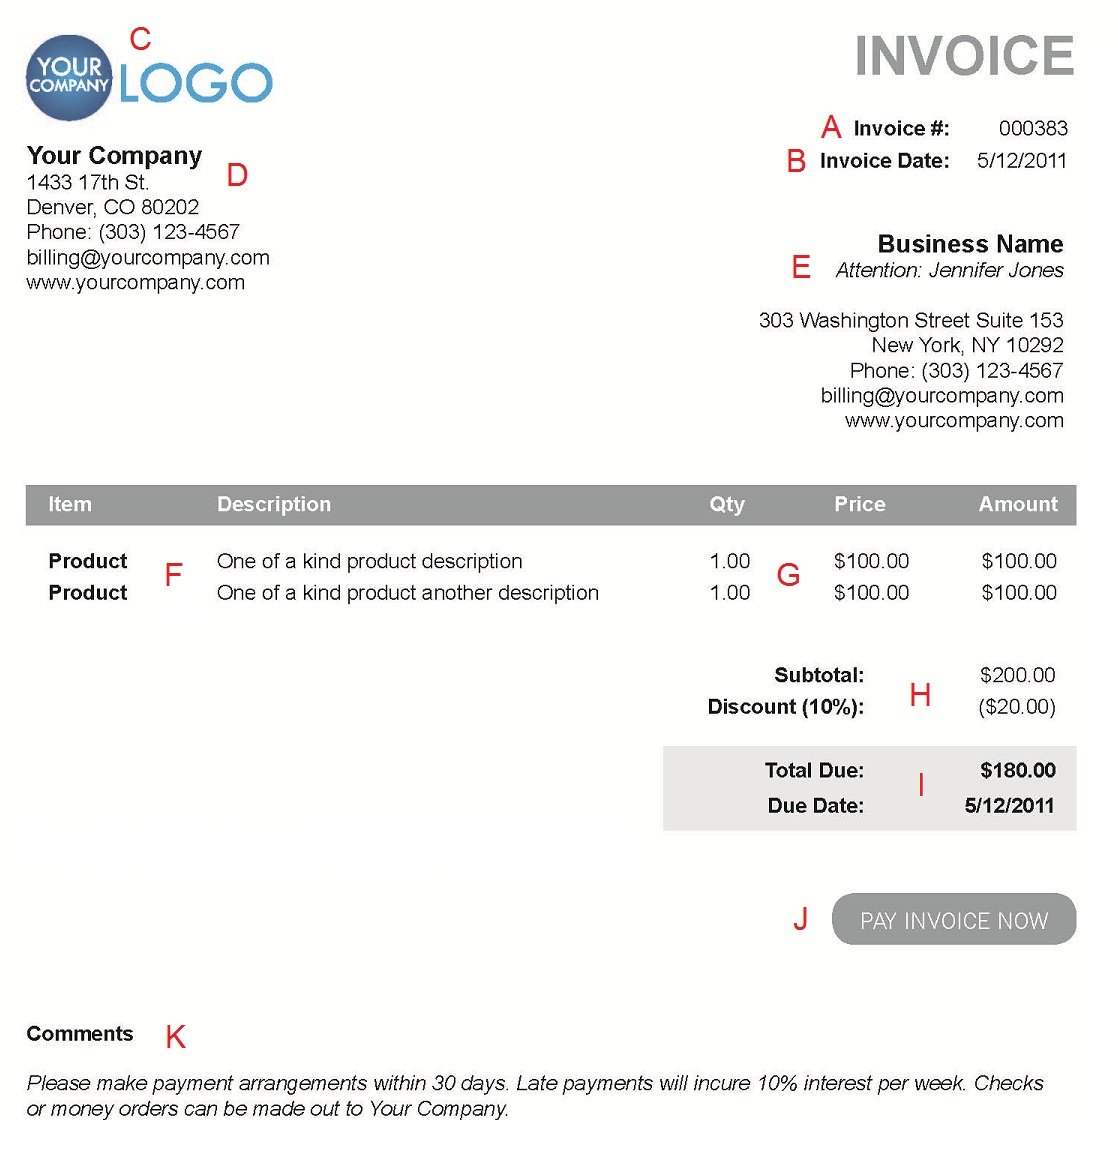 Breakupus  Wonderful The  Different Sections Of An Electronic Payment Invoice With Excellent A  With Appealing Mock Invoice Template Also Nz Tax Invoice Template In Addition Architect Invoice And Free Tax Invoice Template Word As Well As Invoice Sale Additionally How To Make Invoices In Word From Paysimplecom With Breakupus  Excellent The  Different Sections Of An Electronic Payment Invoice With Appealing A  And Wonderful Mock Invoice Template Also Nz Tax Invoice Template In Addition Architect Invoice From Paysimplecom